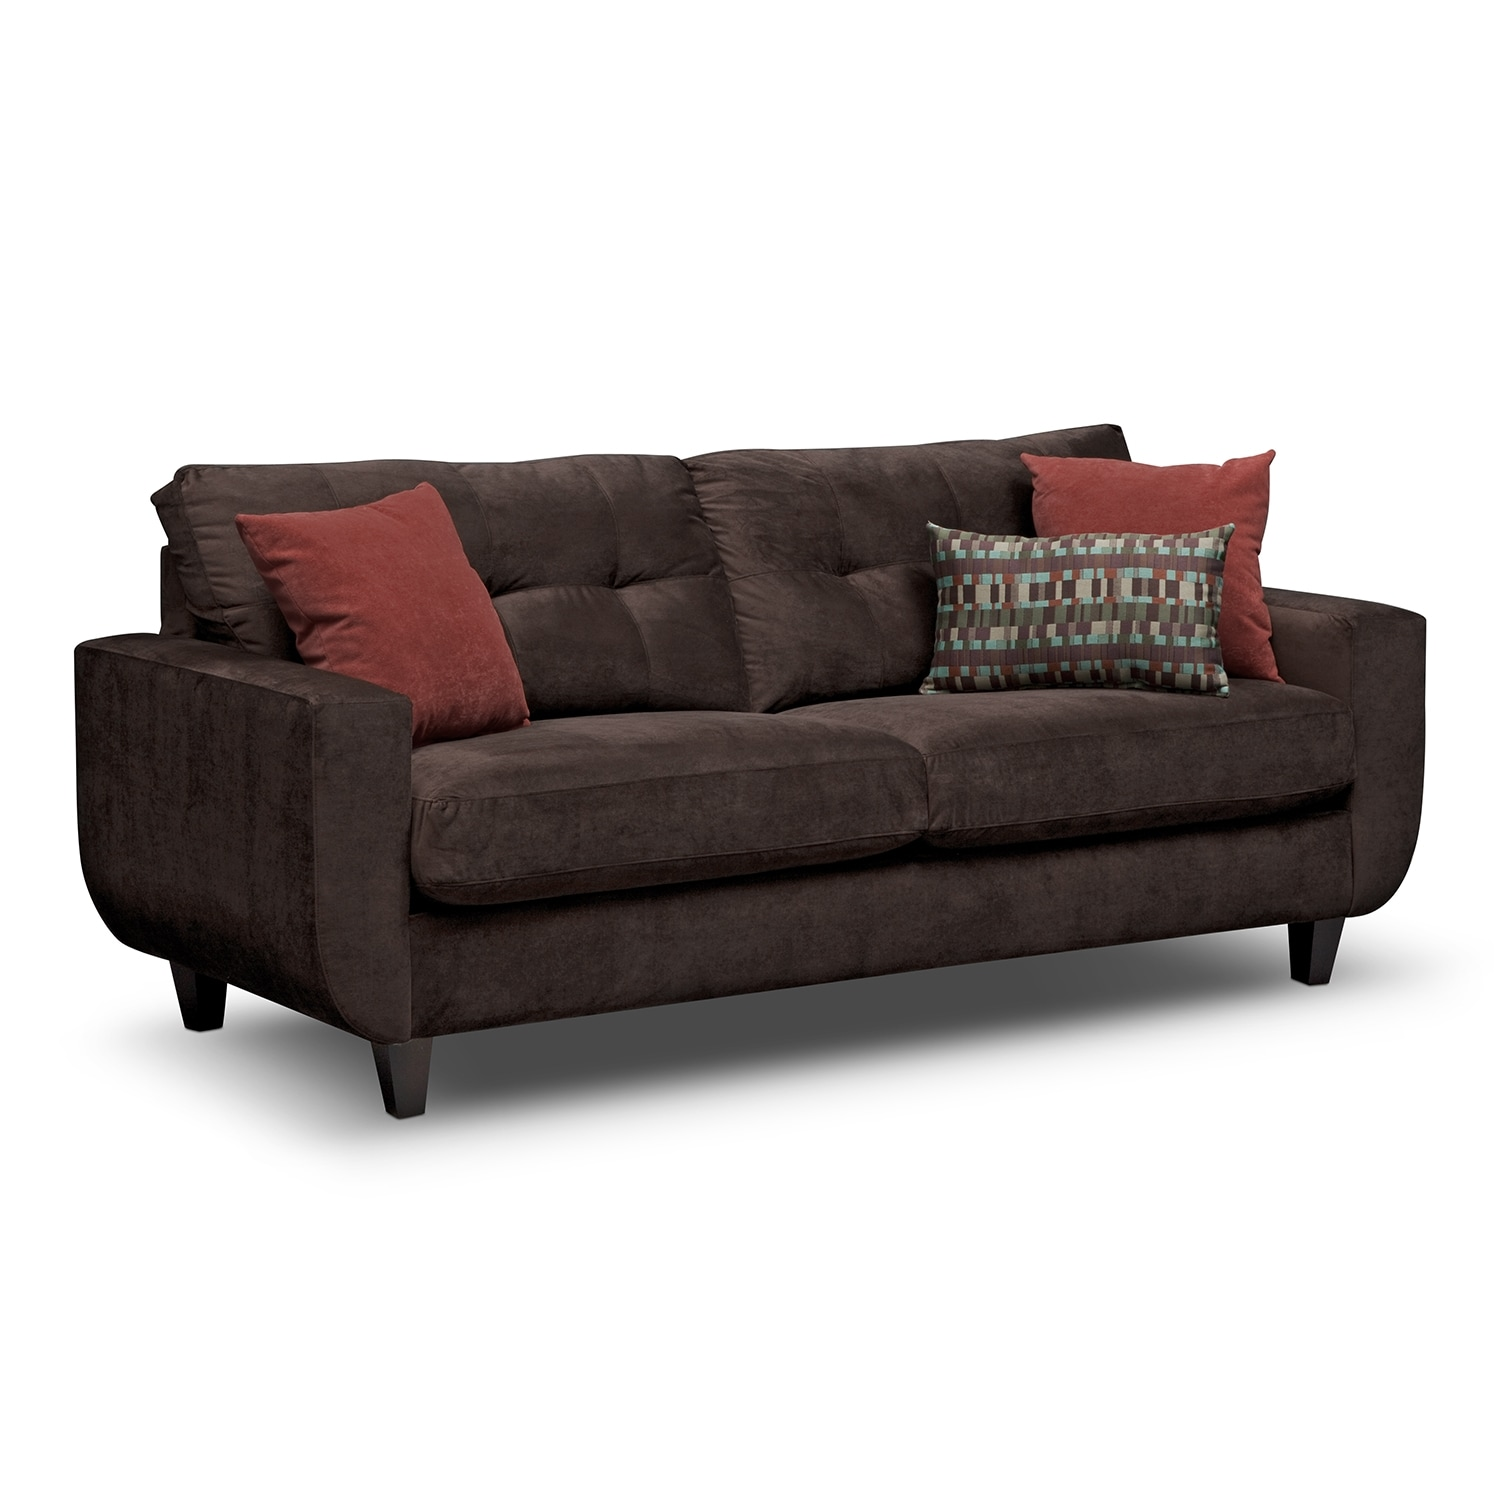 Living Room Furniture - West Village Sofa - Chocolate